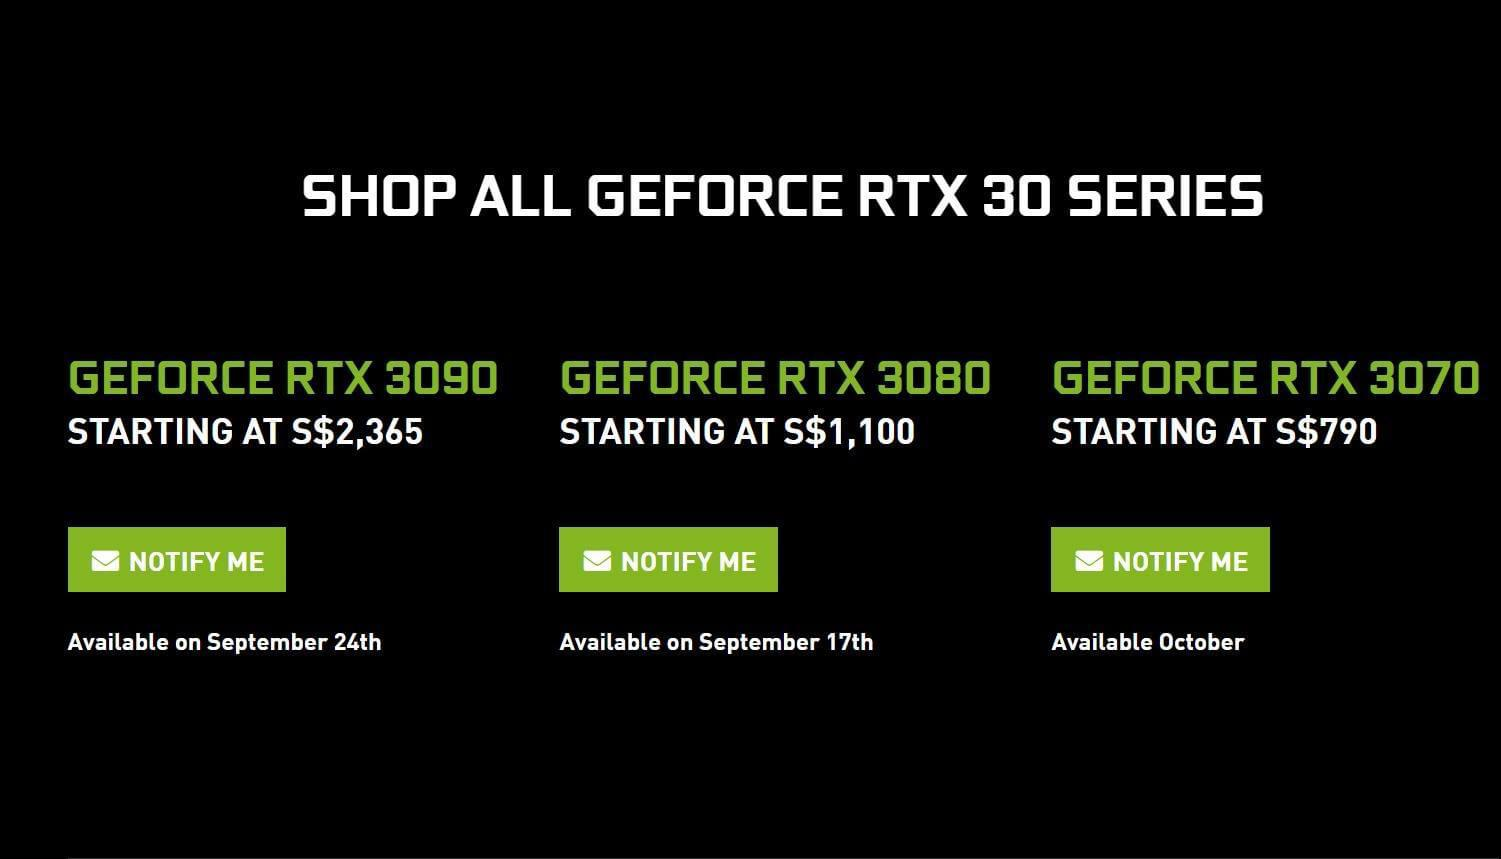 Estimated local pricing (Source: NVIDIA Singapore)